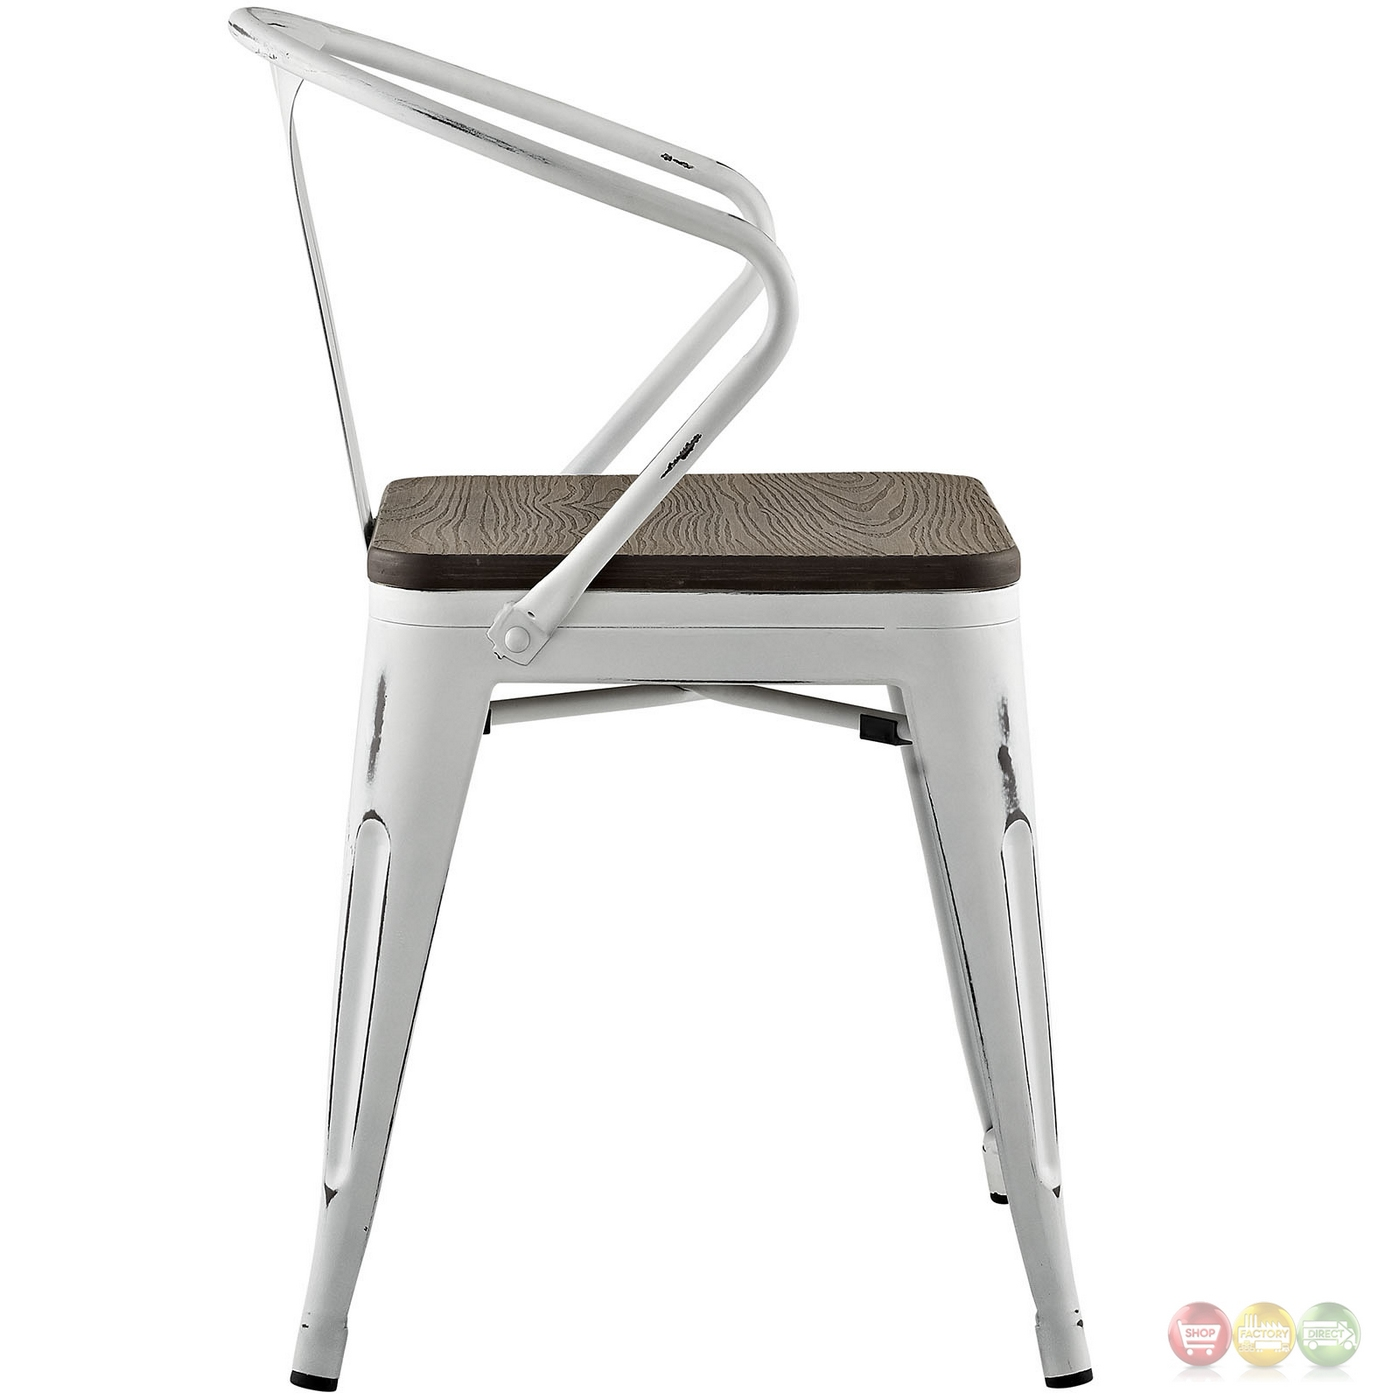 Superb img of Promenade Vintage Arm Chair w/ Wooden Seat & Distressed Finish White with #963537 color and 1400x1400 pixels